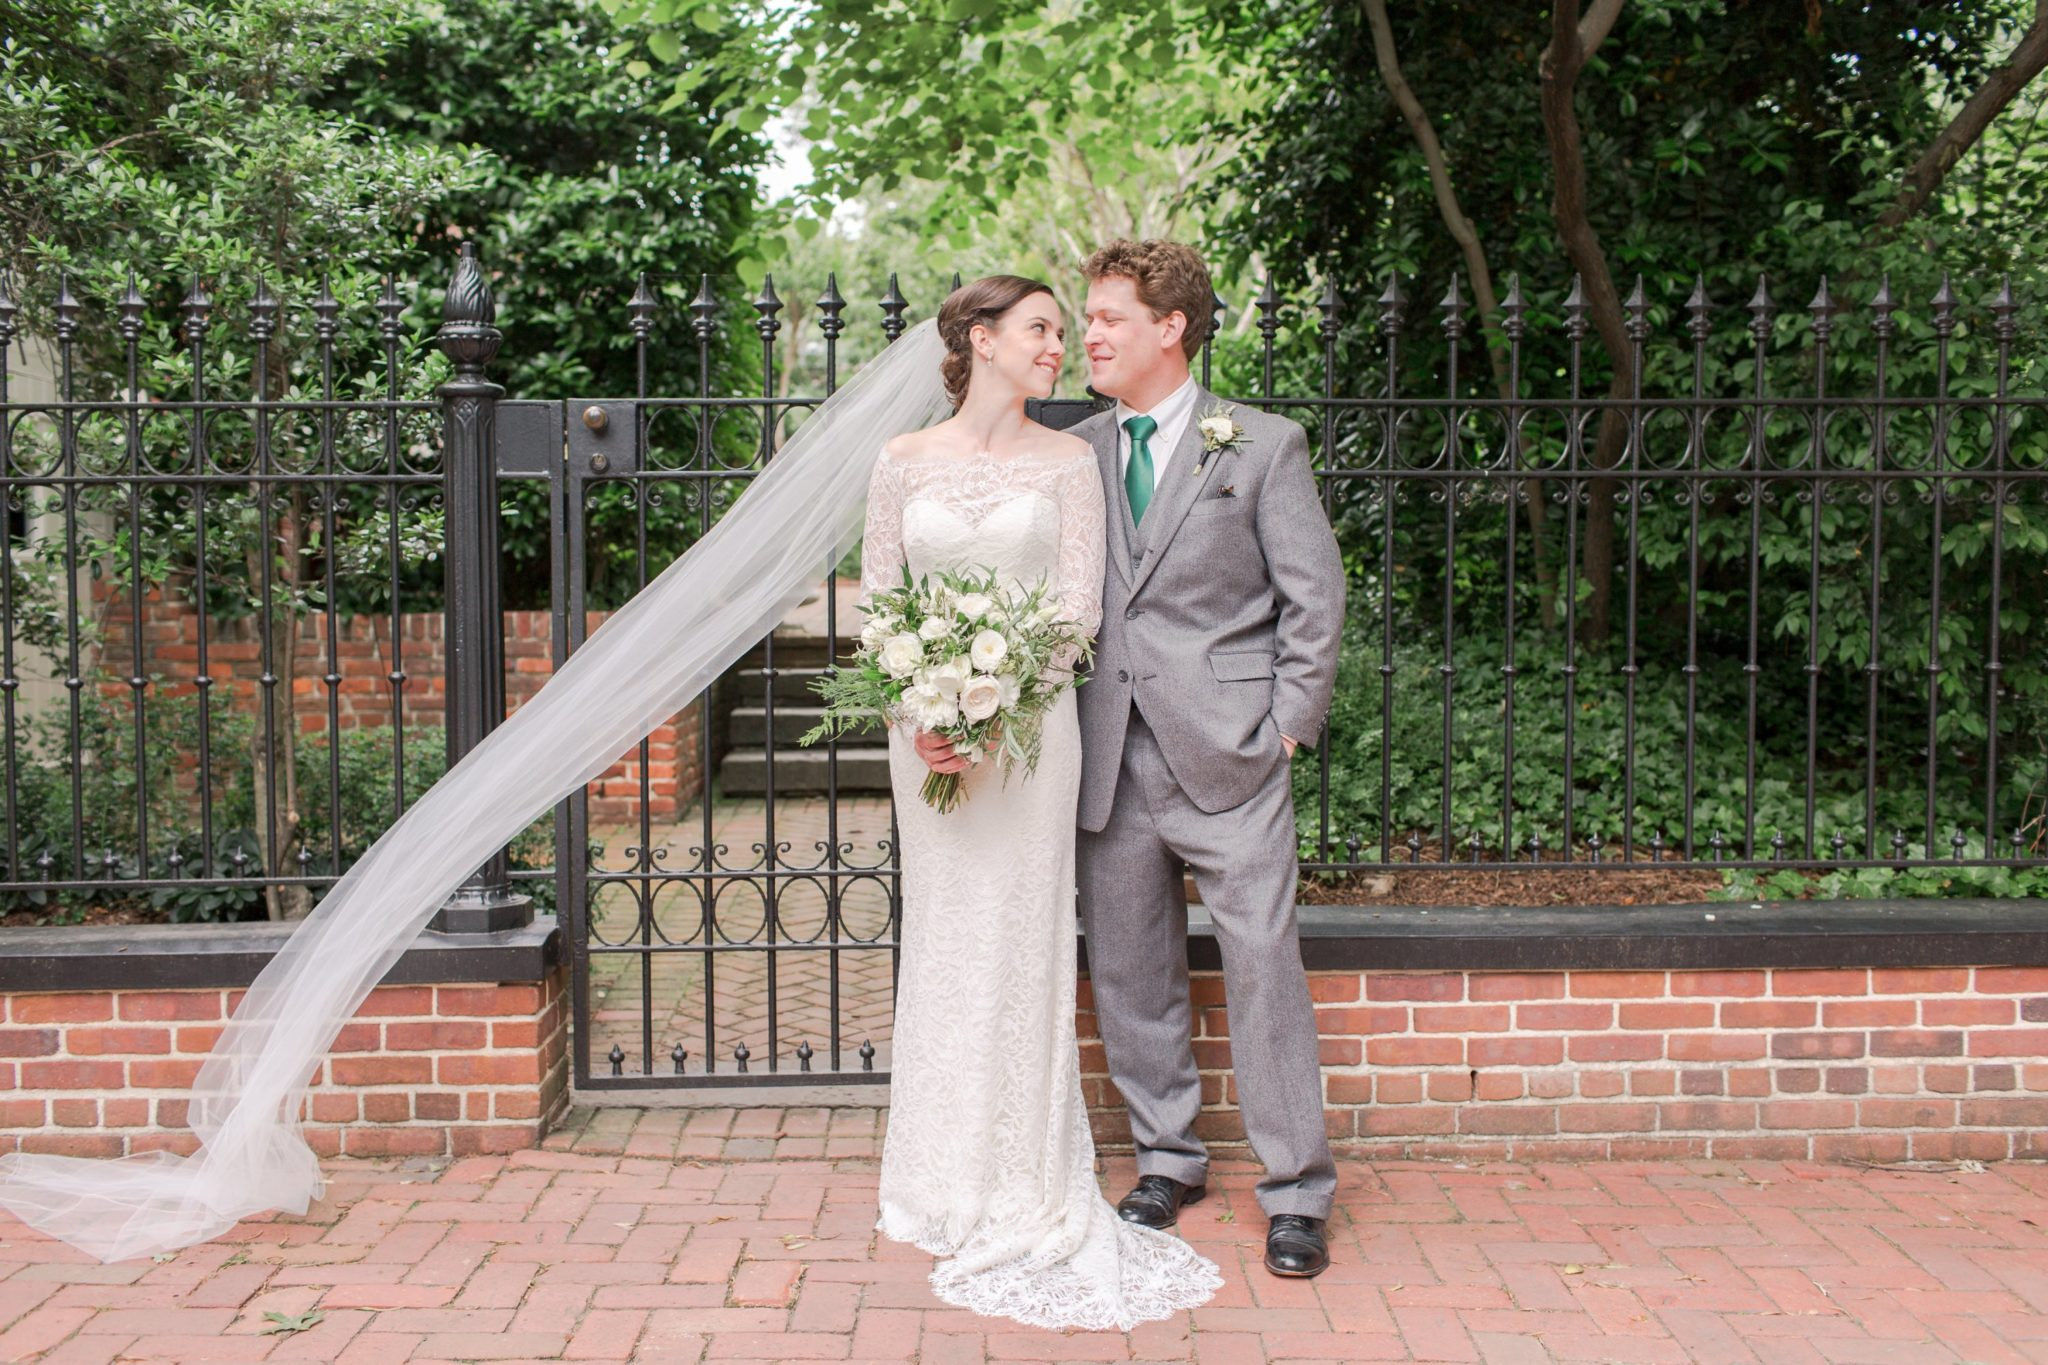 Kelsey Rupp And Jordan Bloom Married At The Immaculate Conception Church In Dc On May 20 2017 Celebrated With A Reception Lee Fendall House